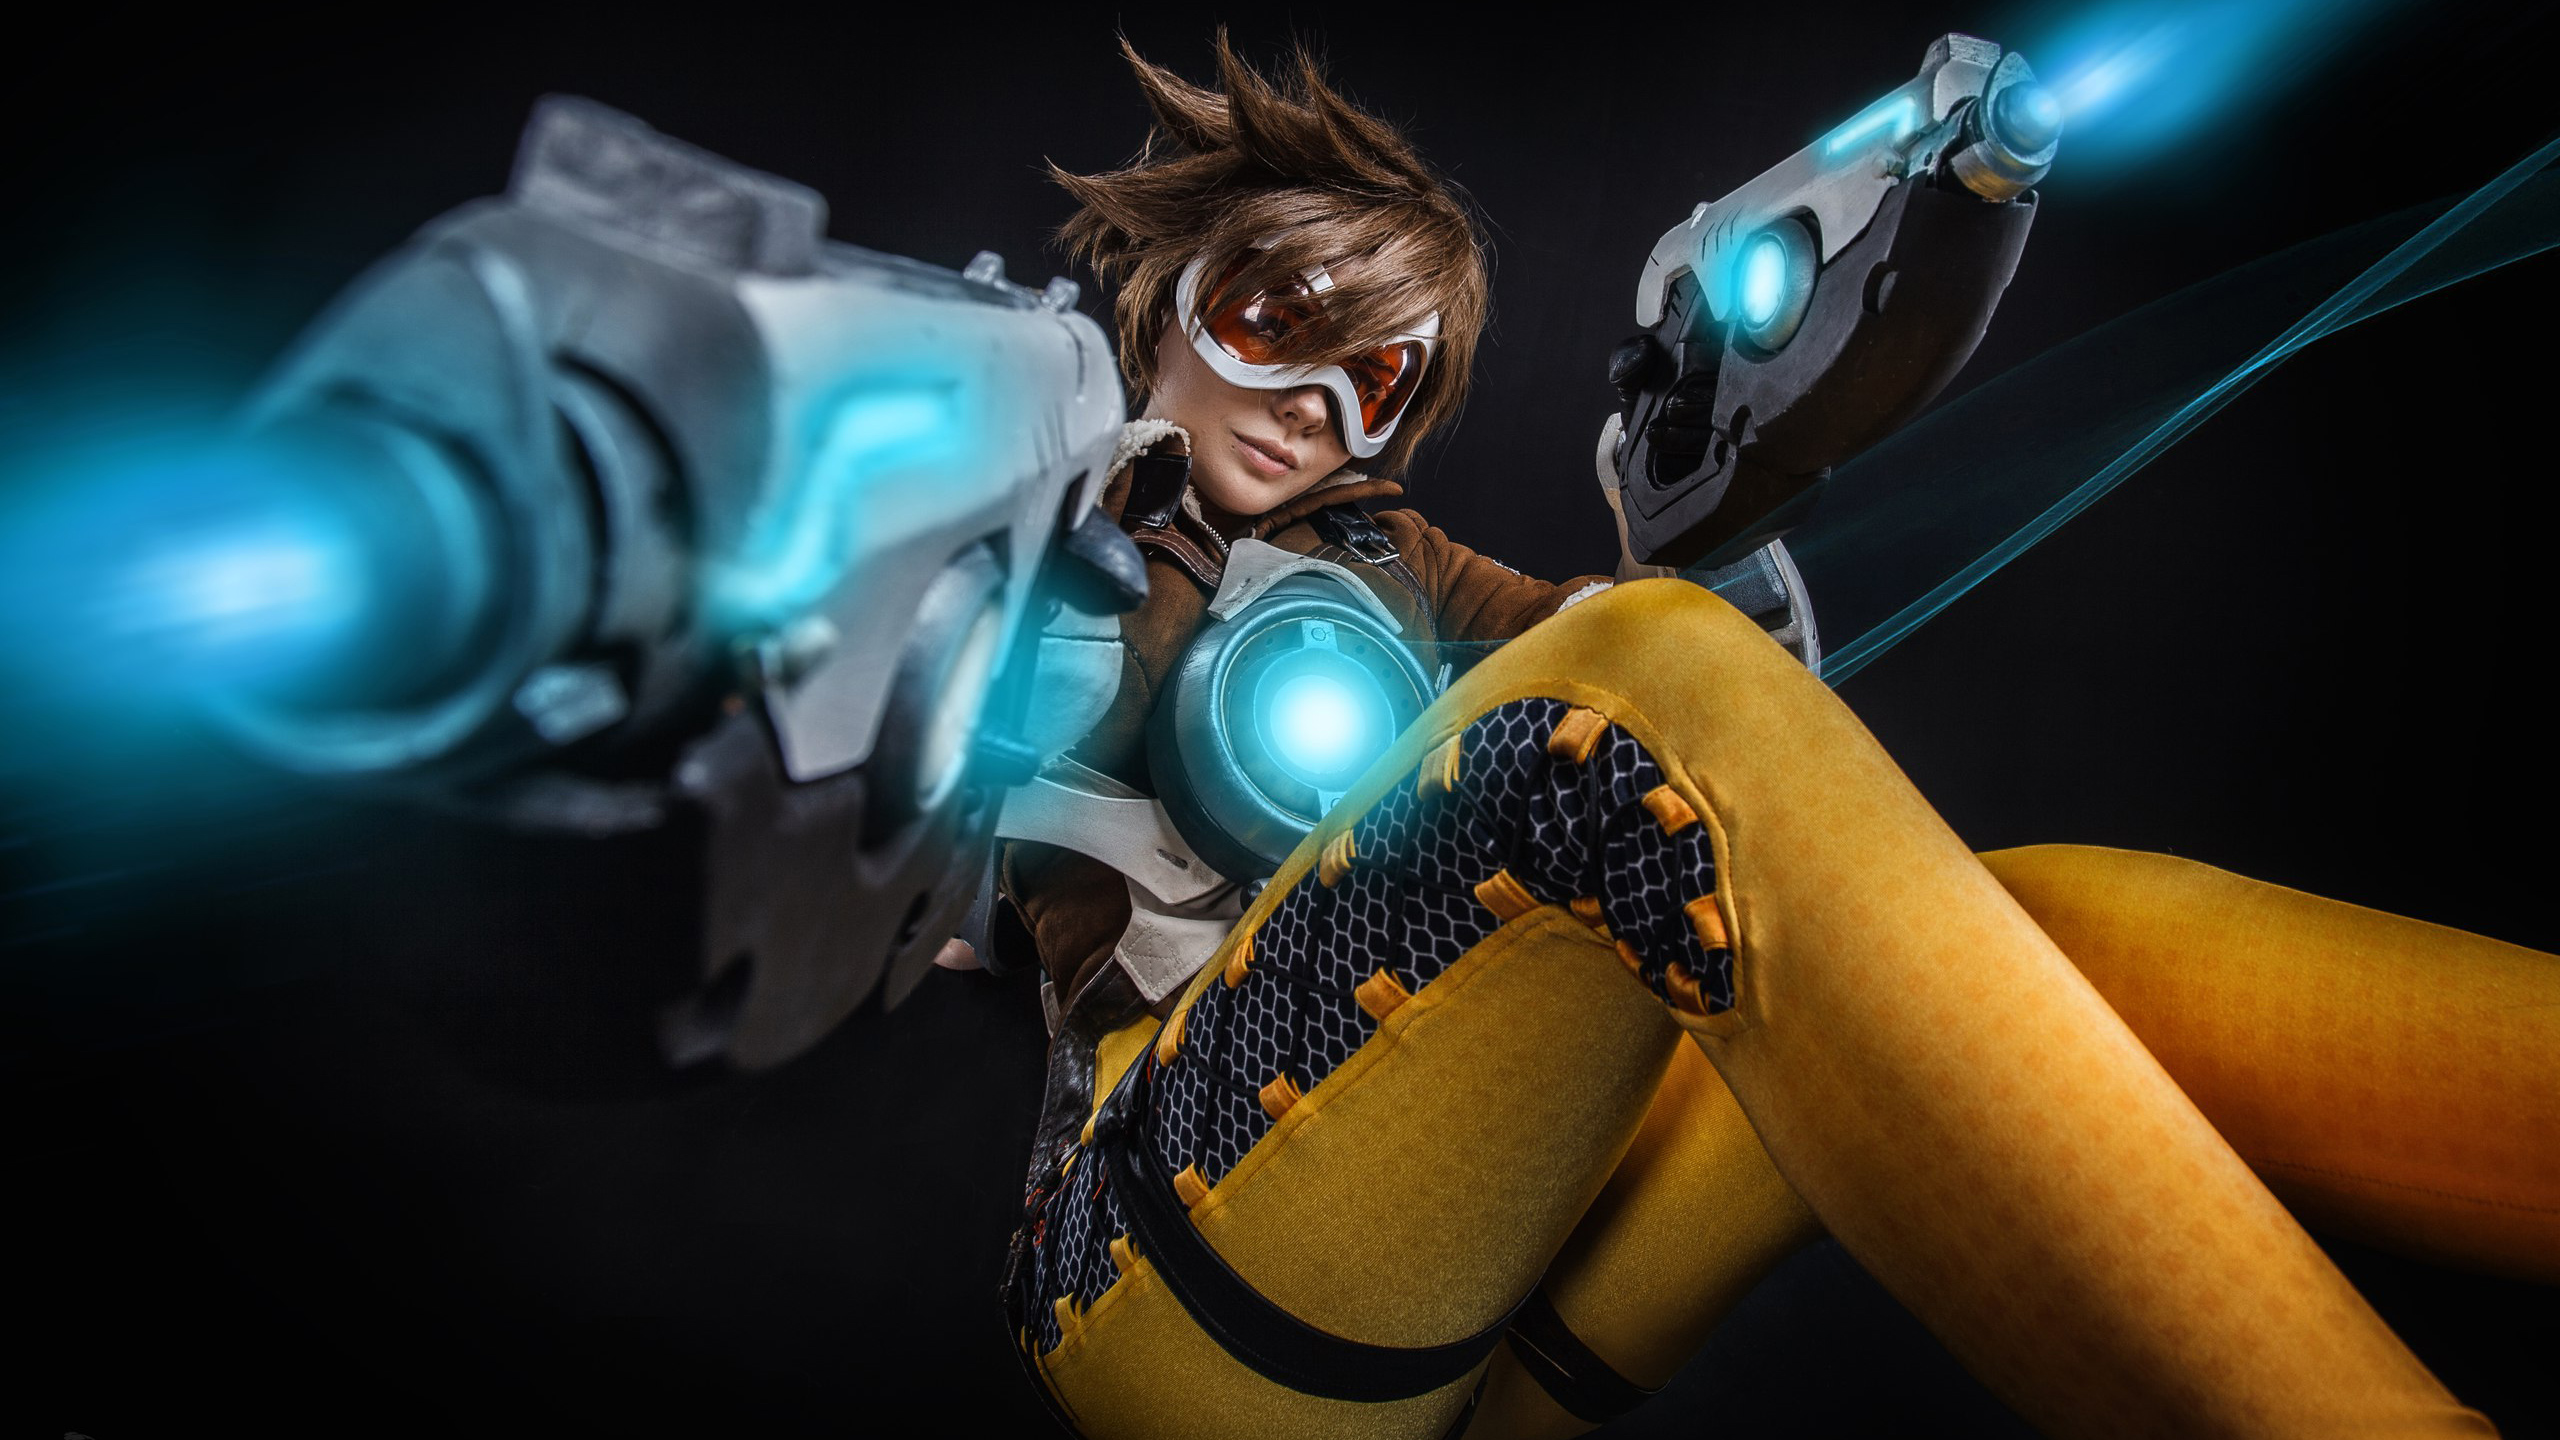 Tracer Cosplay Overwatch Wallpapers Hd Wallpapers